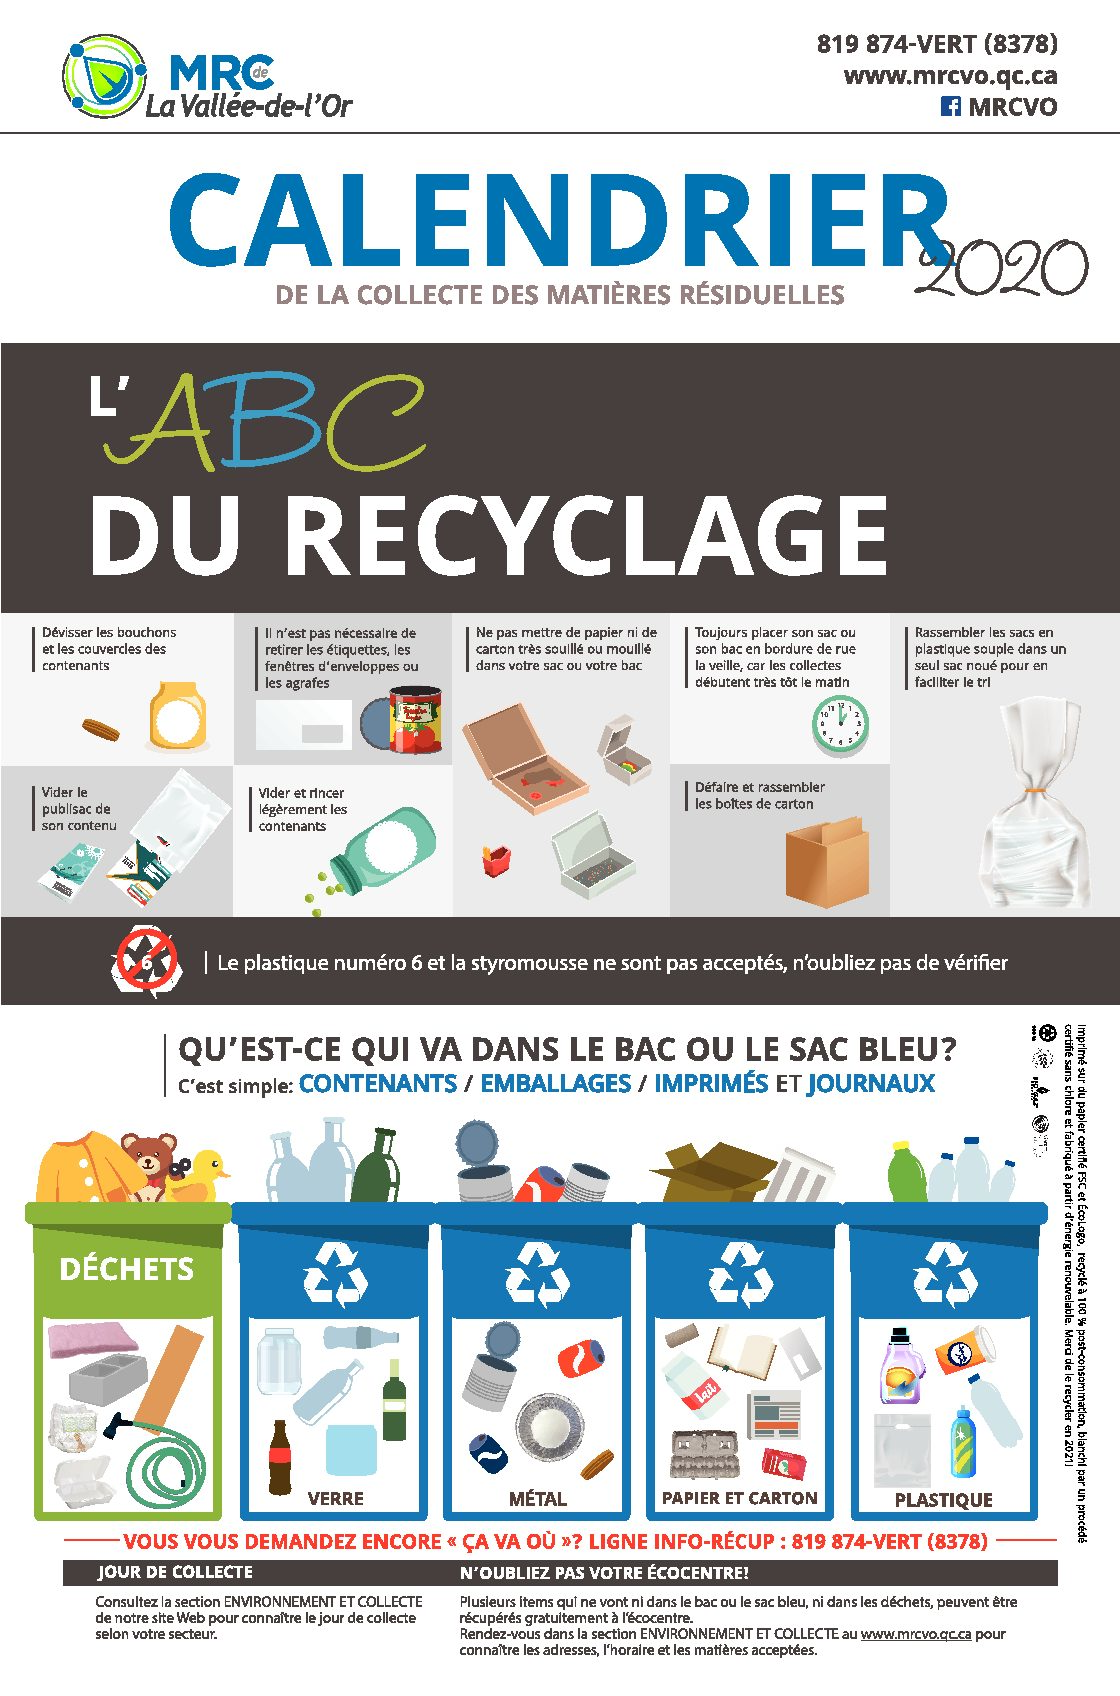 CONSIGNES POUR RECYCLER